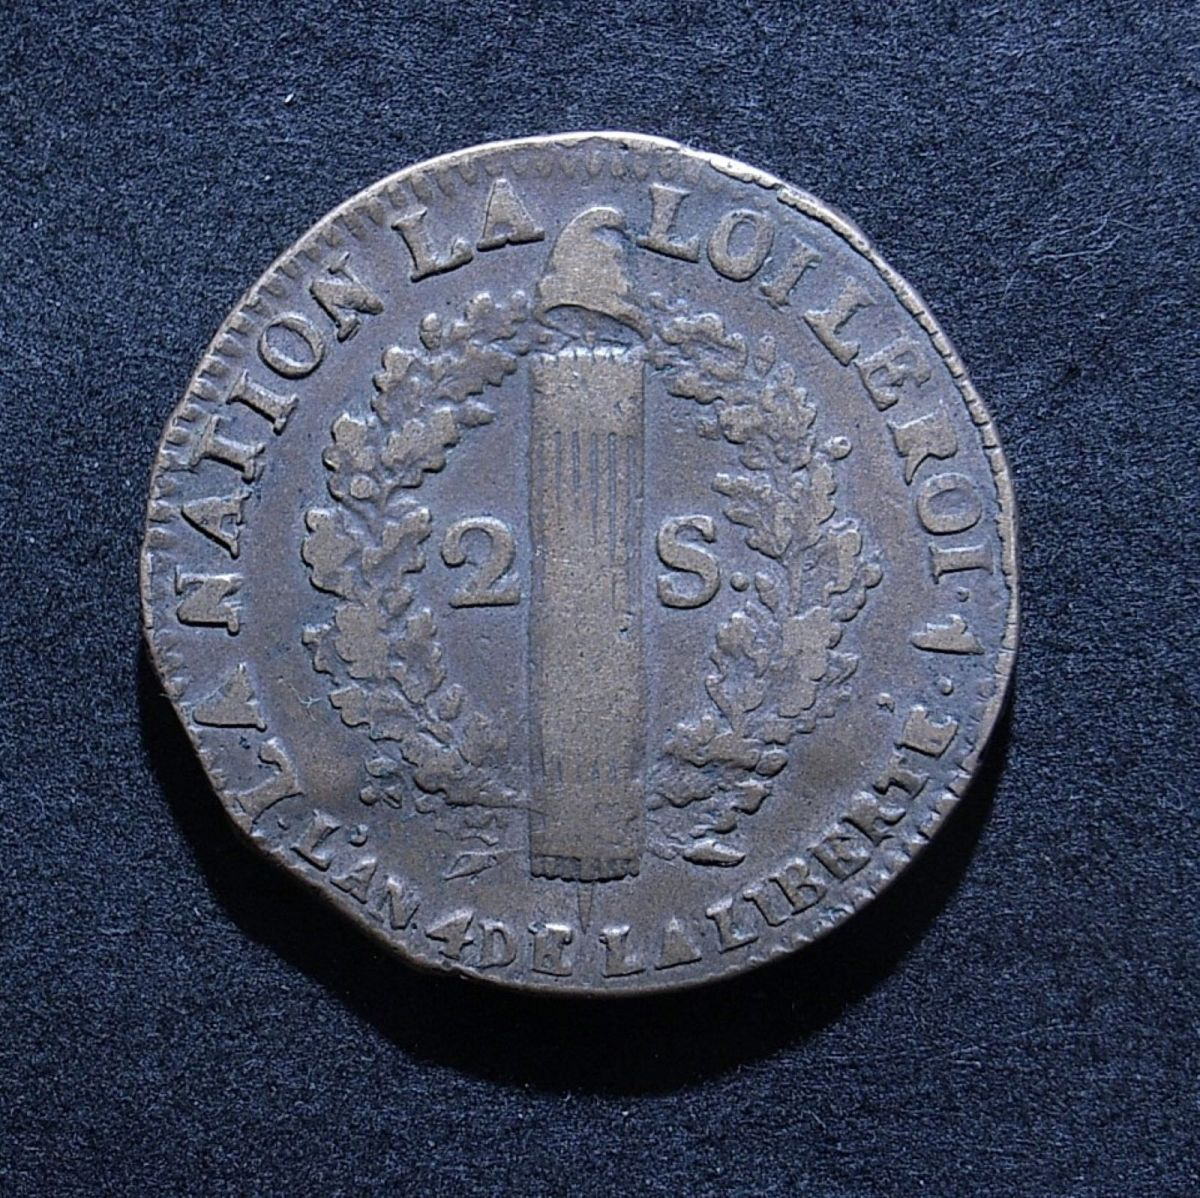 Close up of France 2 sous 1792 reverse